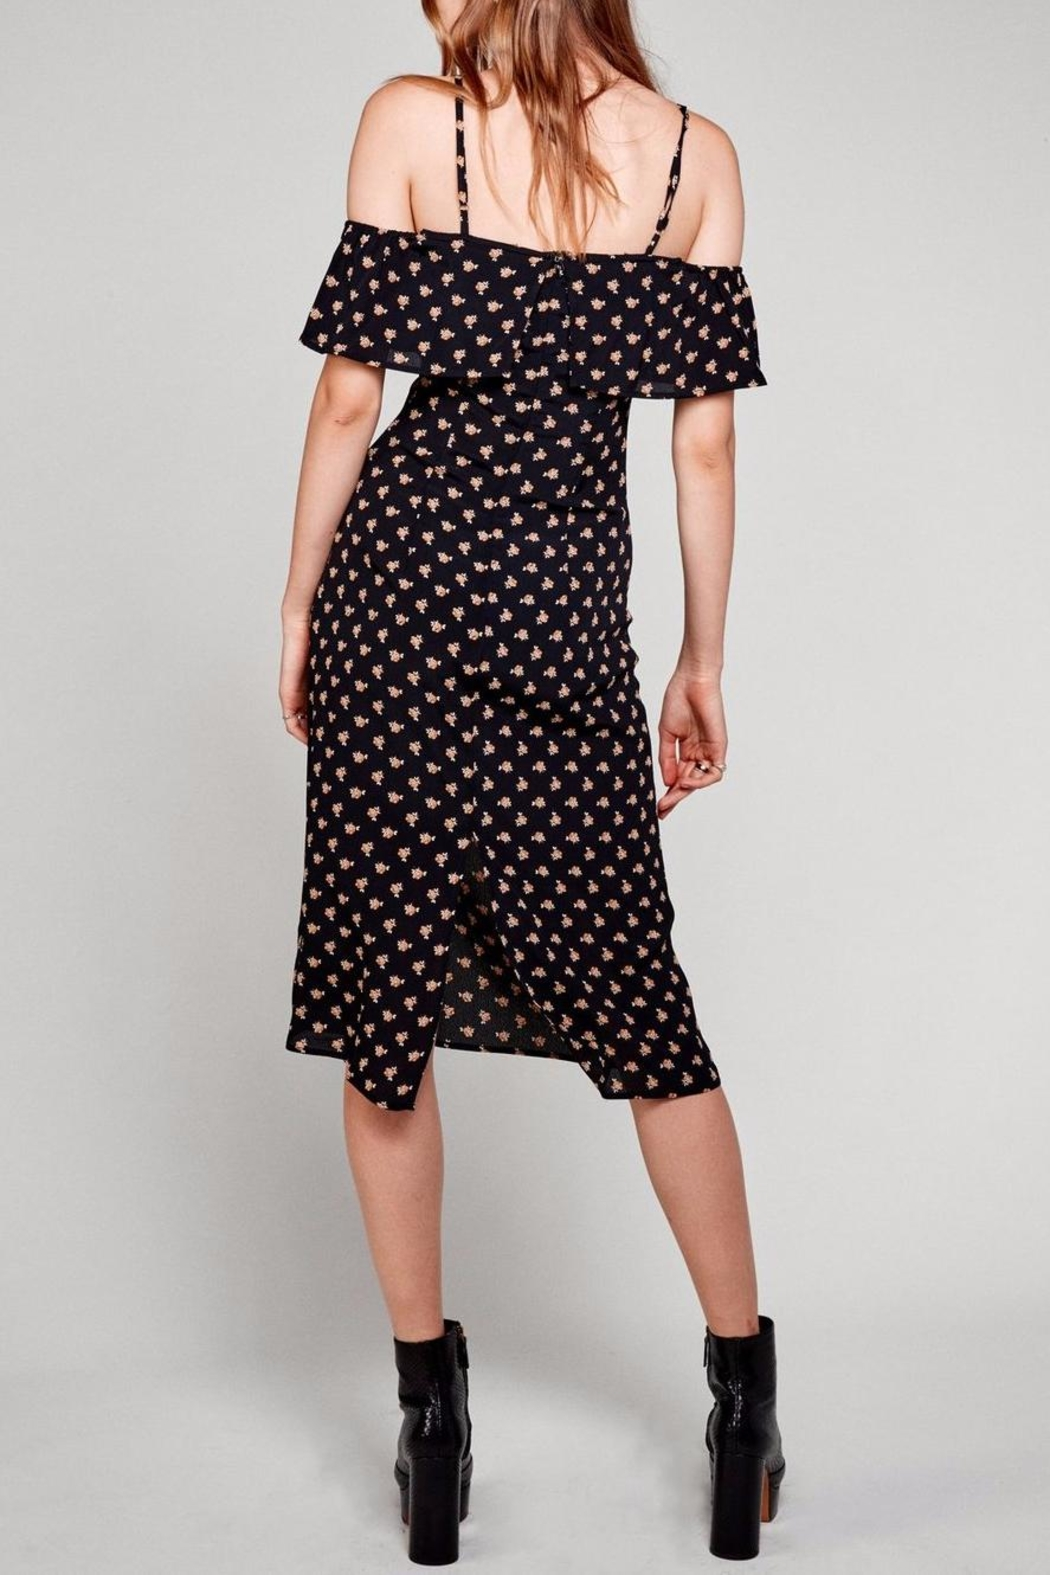 Flynn Skye Morgan Midi Dress - Side Cropped Image